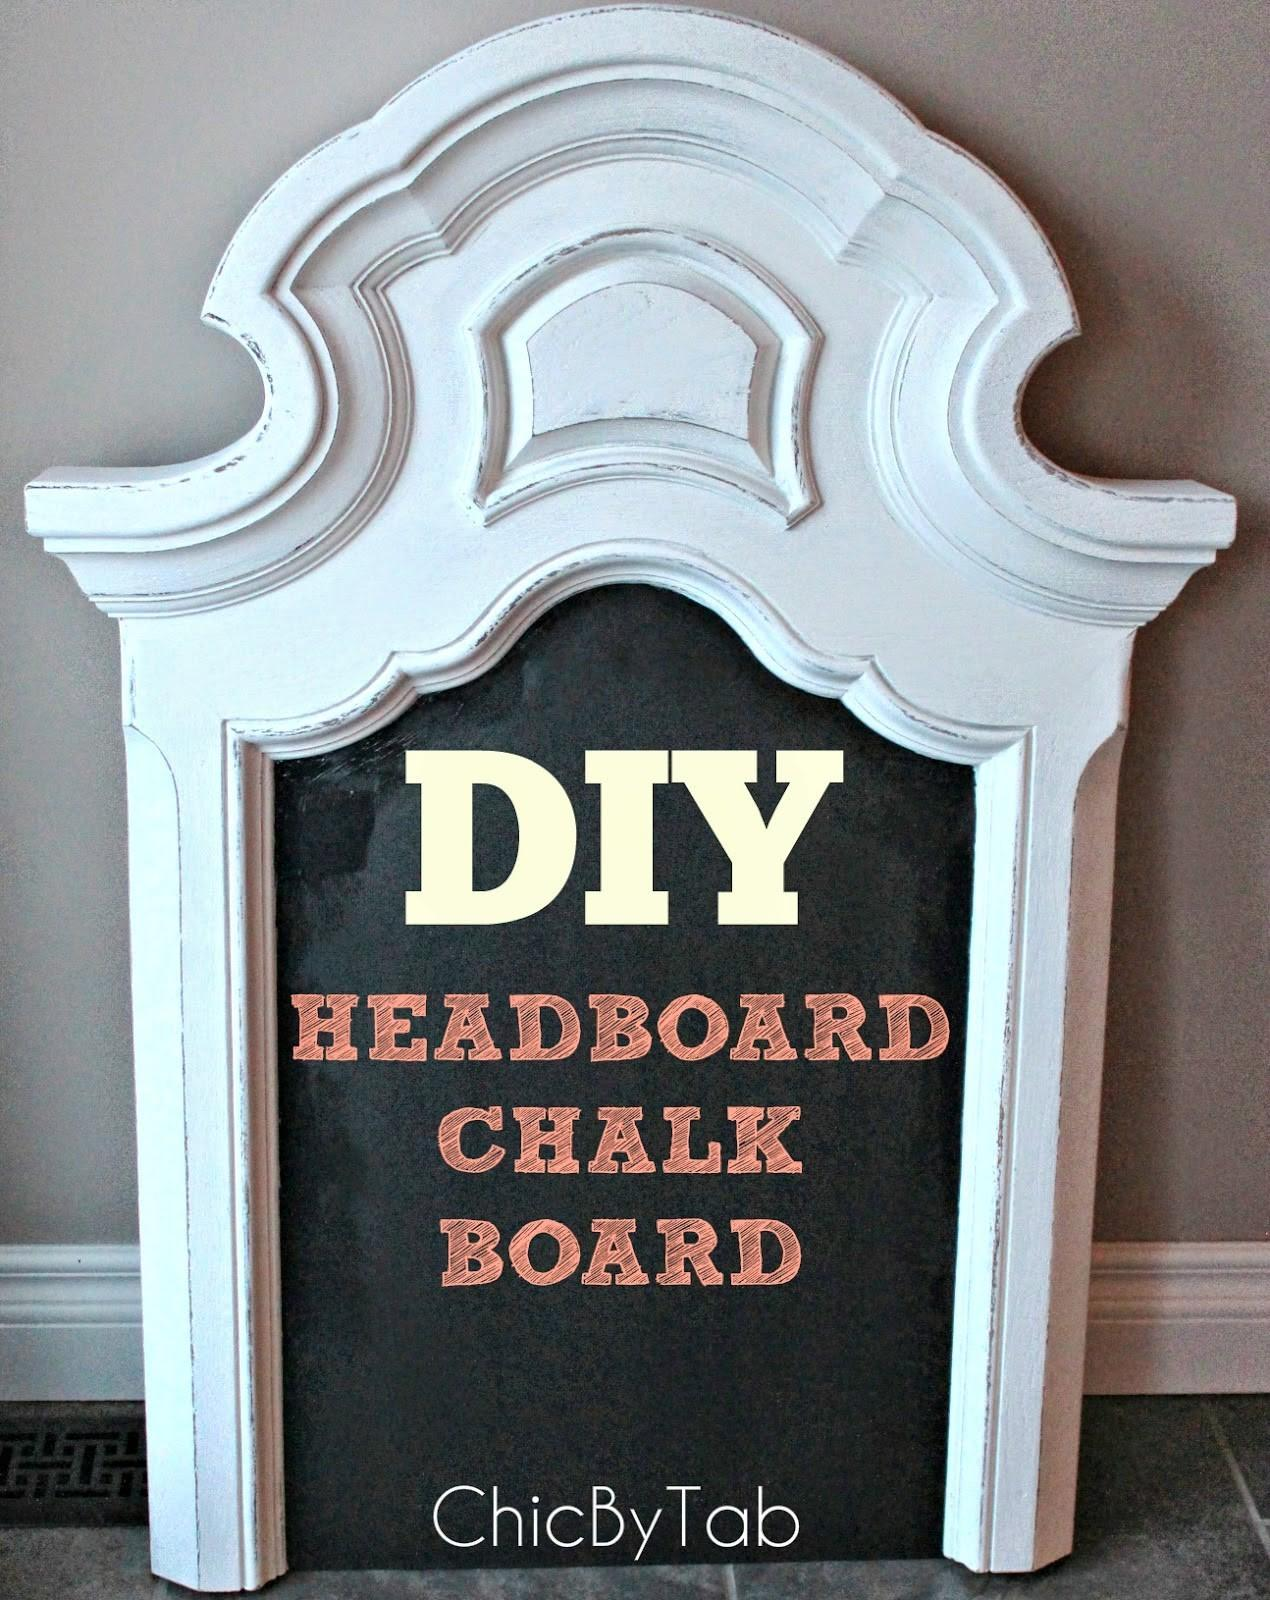 Diy Vintage Chic Friday Five Features